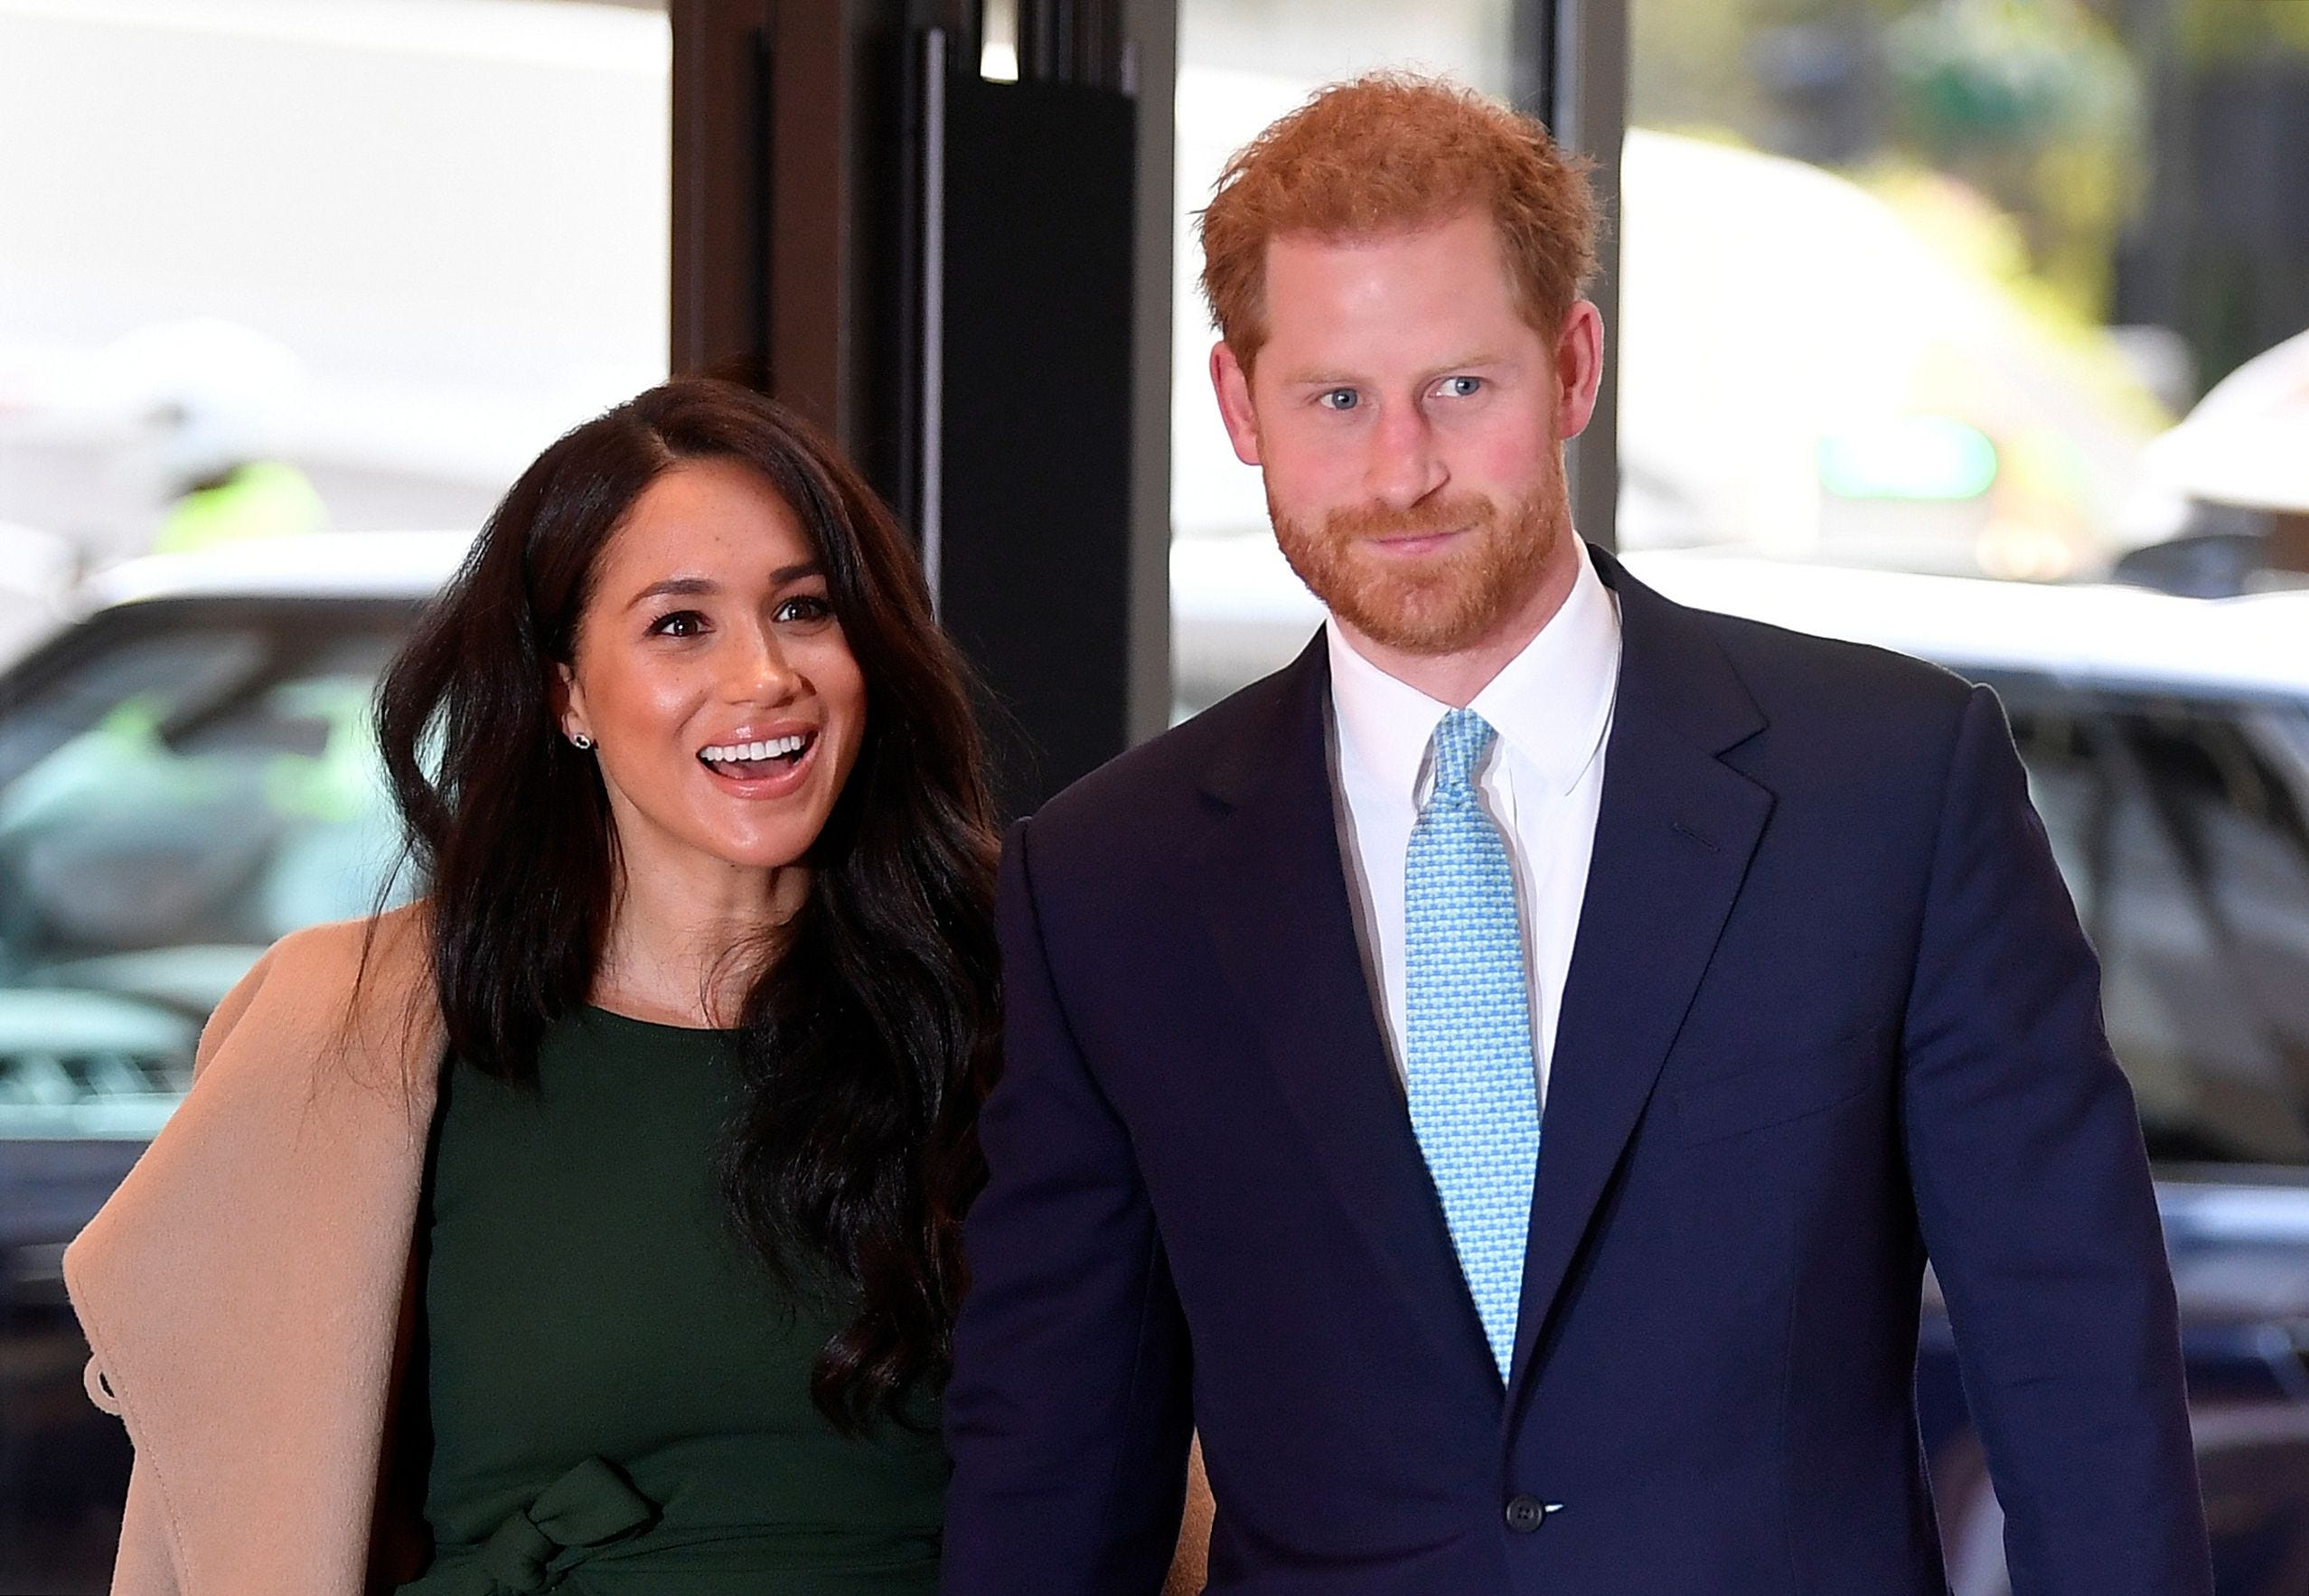 Harry and Meghan wish Kate a happy birthday via Instagram after their decision to step back